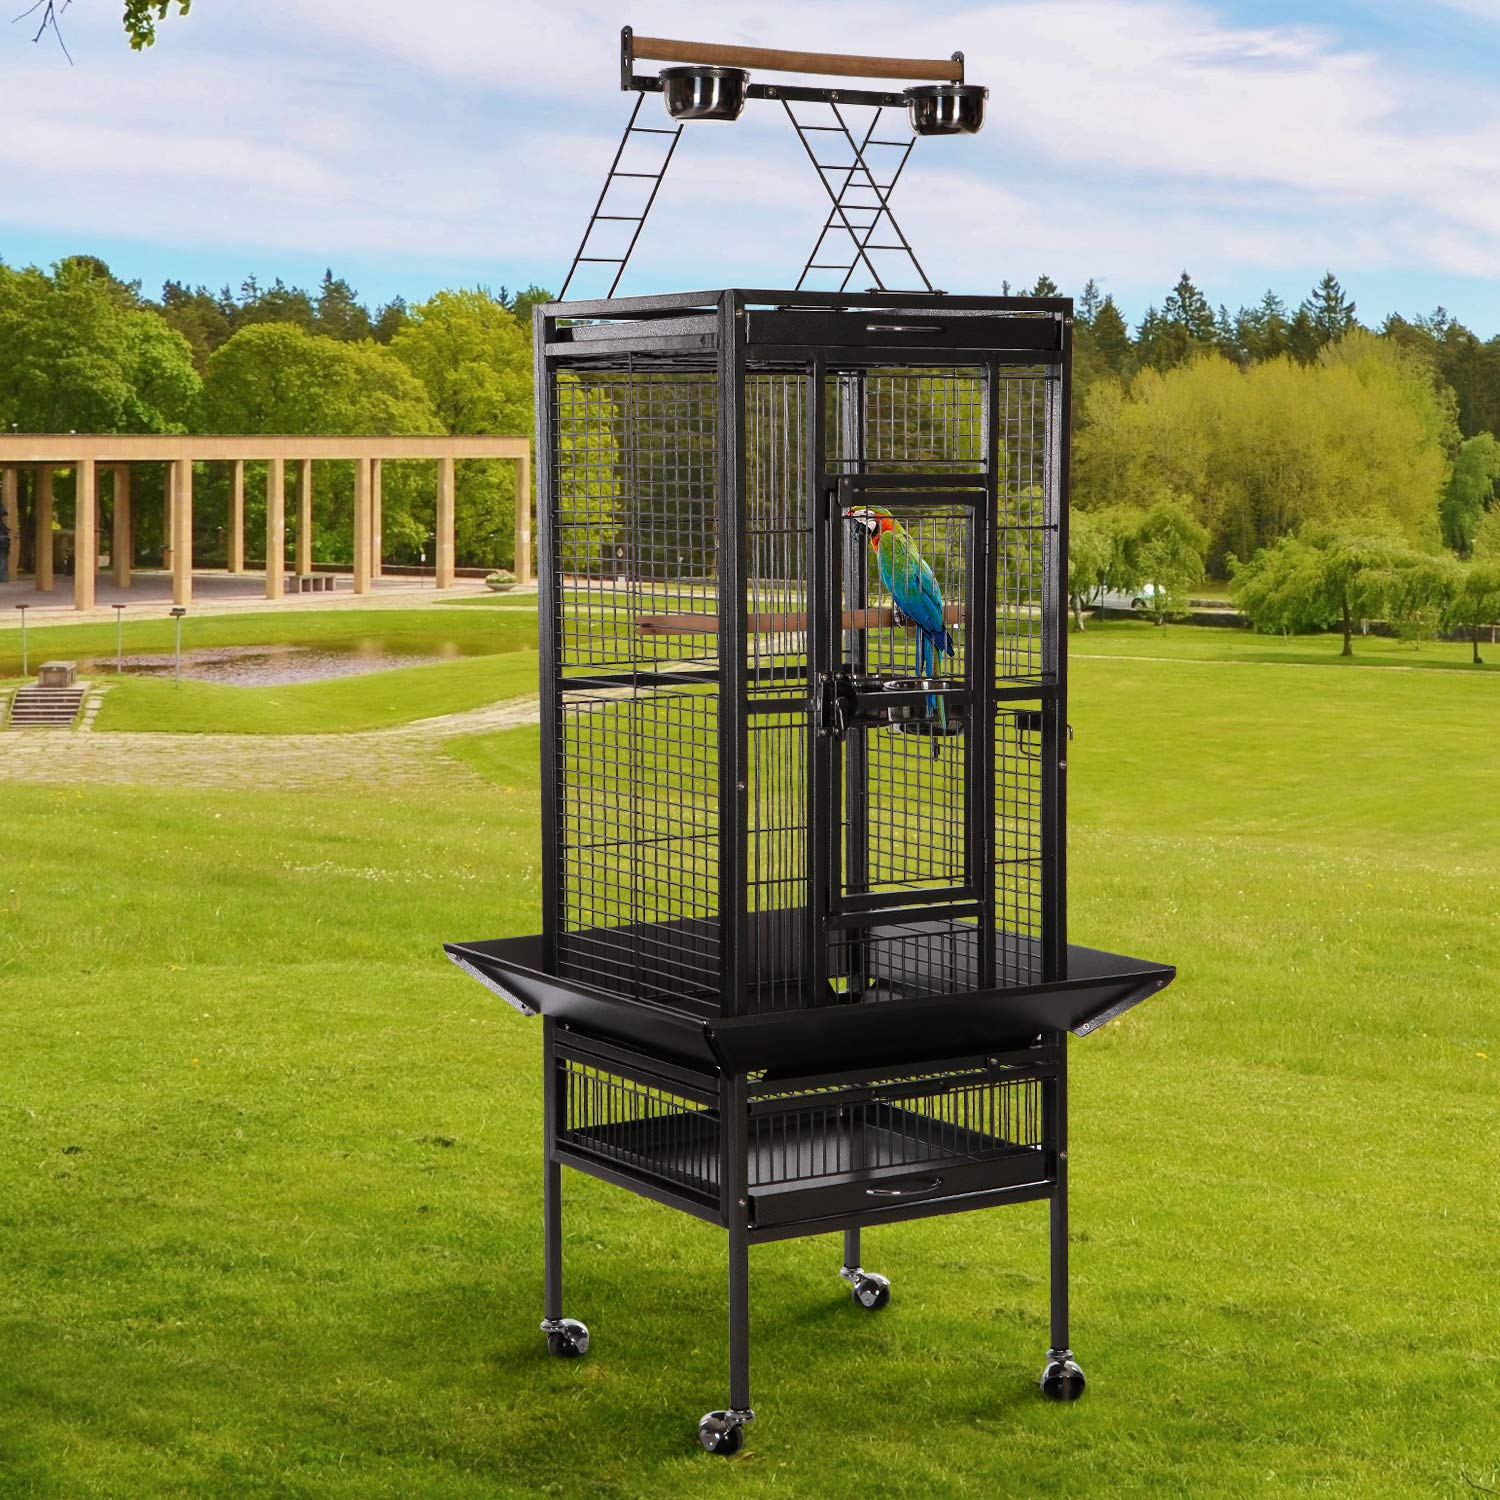 e6801ac2a4d1 VECELA Bird cage Wrought Iron Flight cage Parrot cage 53/61/68inch Large  Bird cage Rolling Trolley Metal Wheels